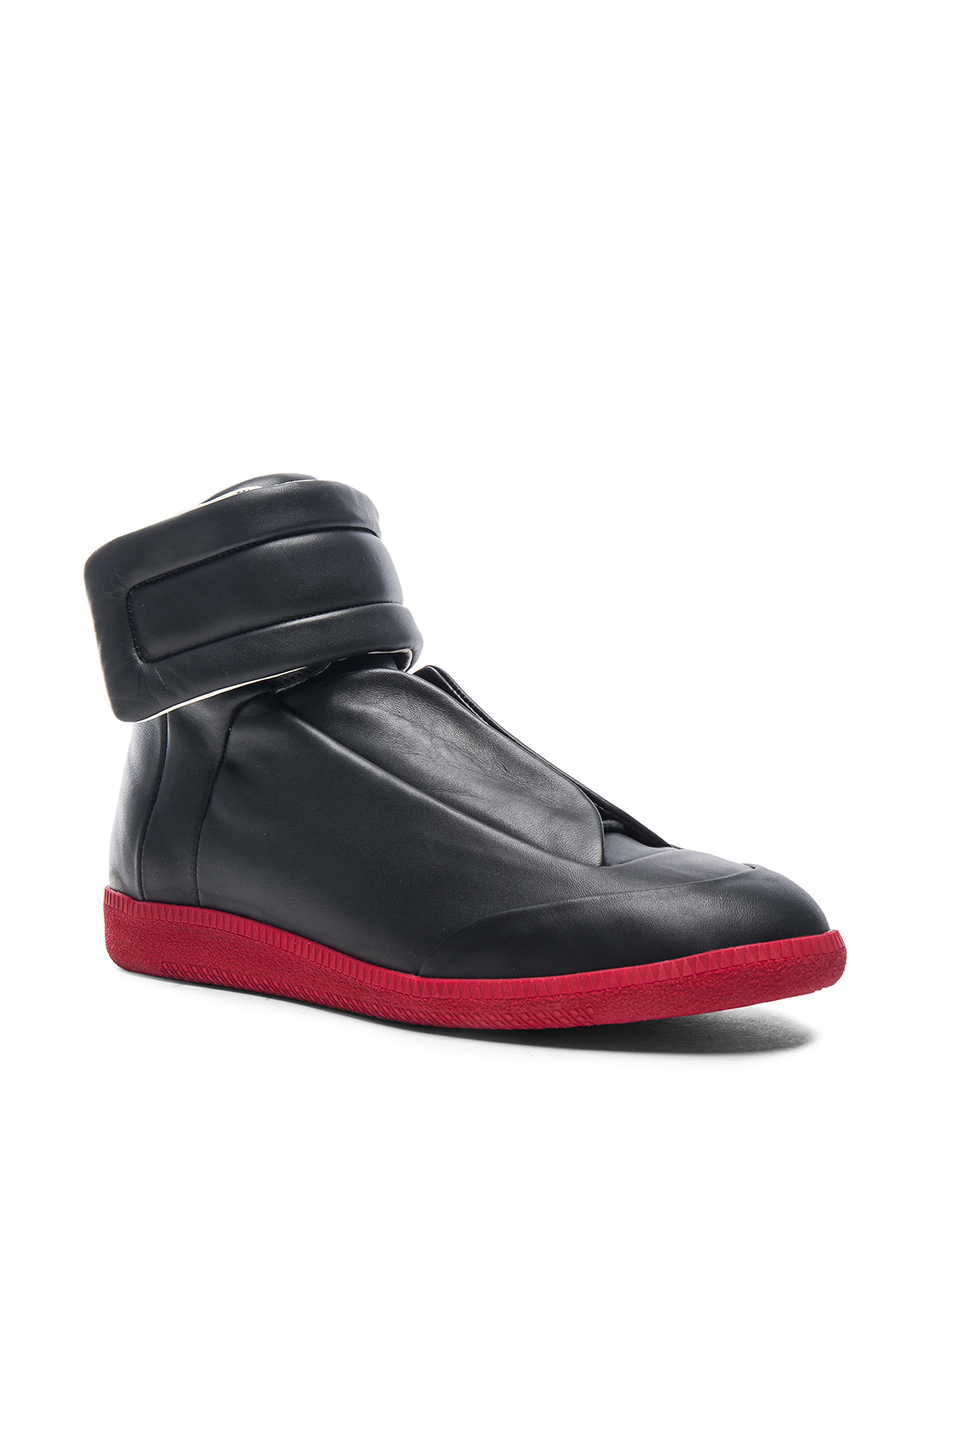 Maison Margiela Calfskin Future High Tops in Black